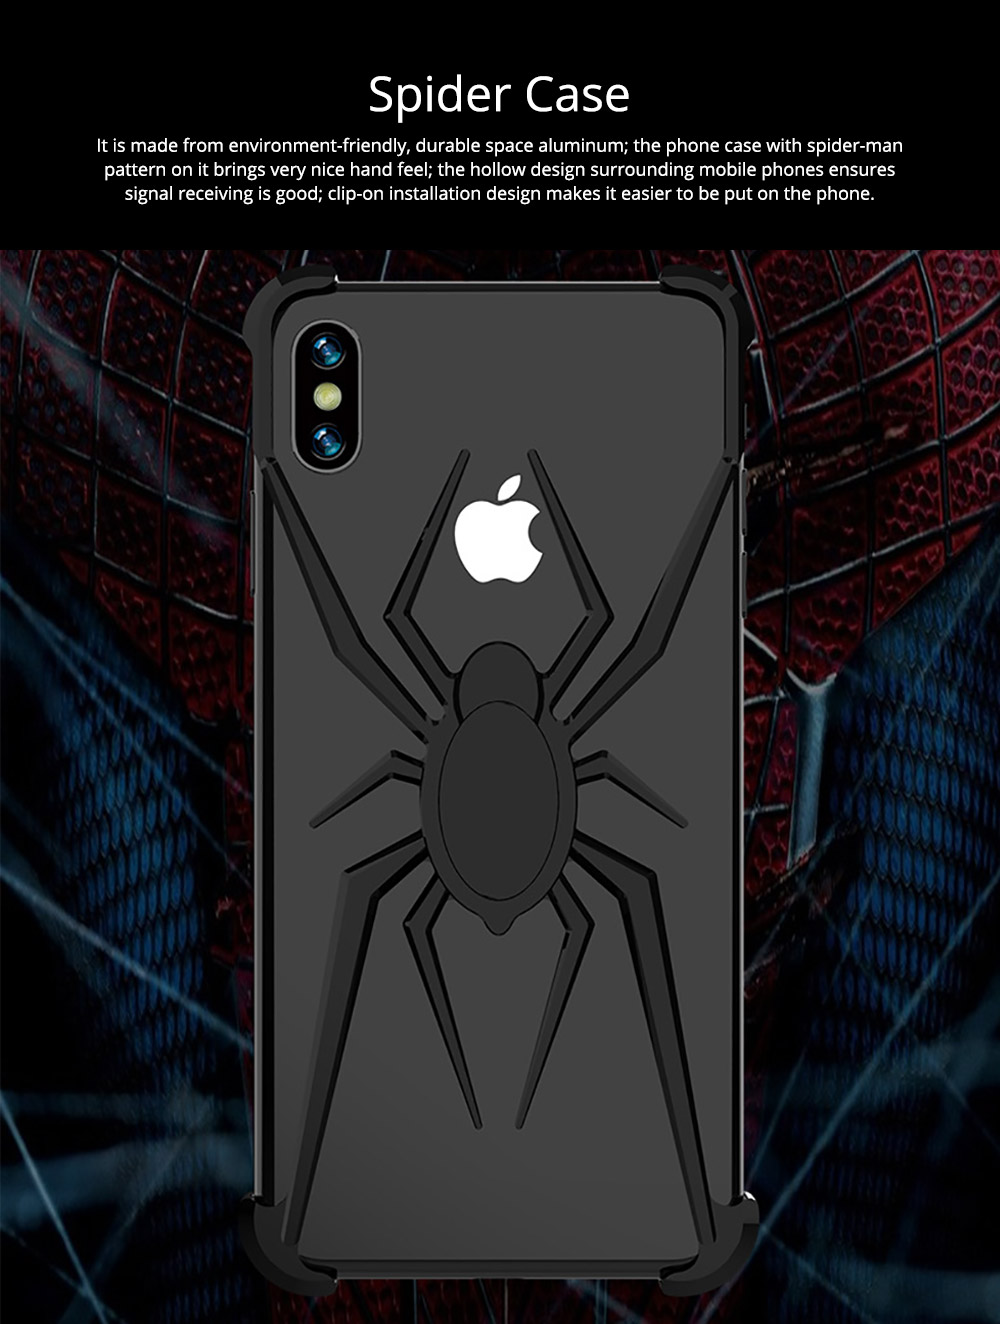 Spider Phone Case iPhone XR iPhone XS iPhone Max Phone Cover with Metal Rim iPhone Accessories Mobile Phone Skins 0